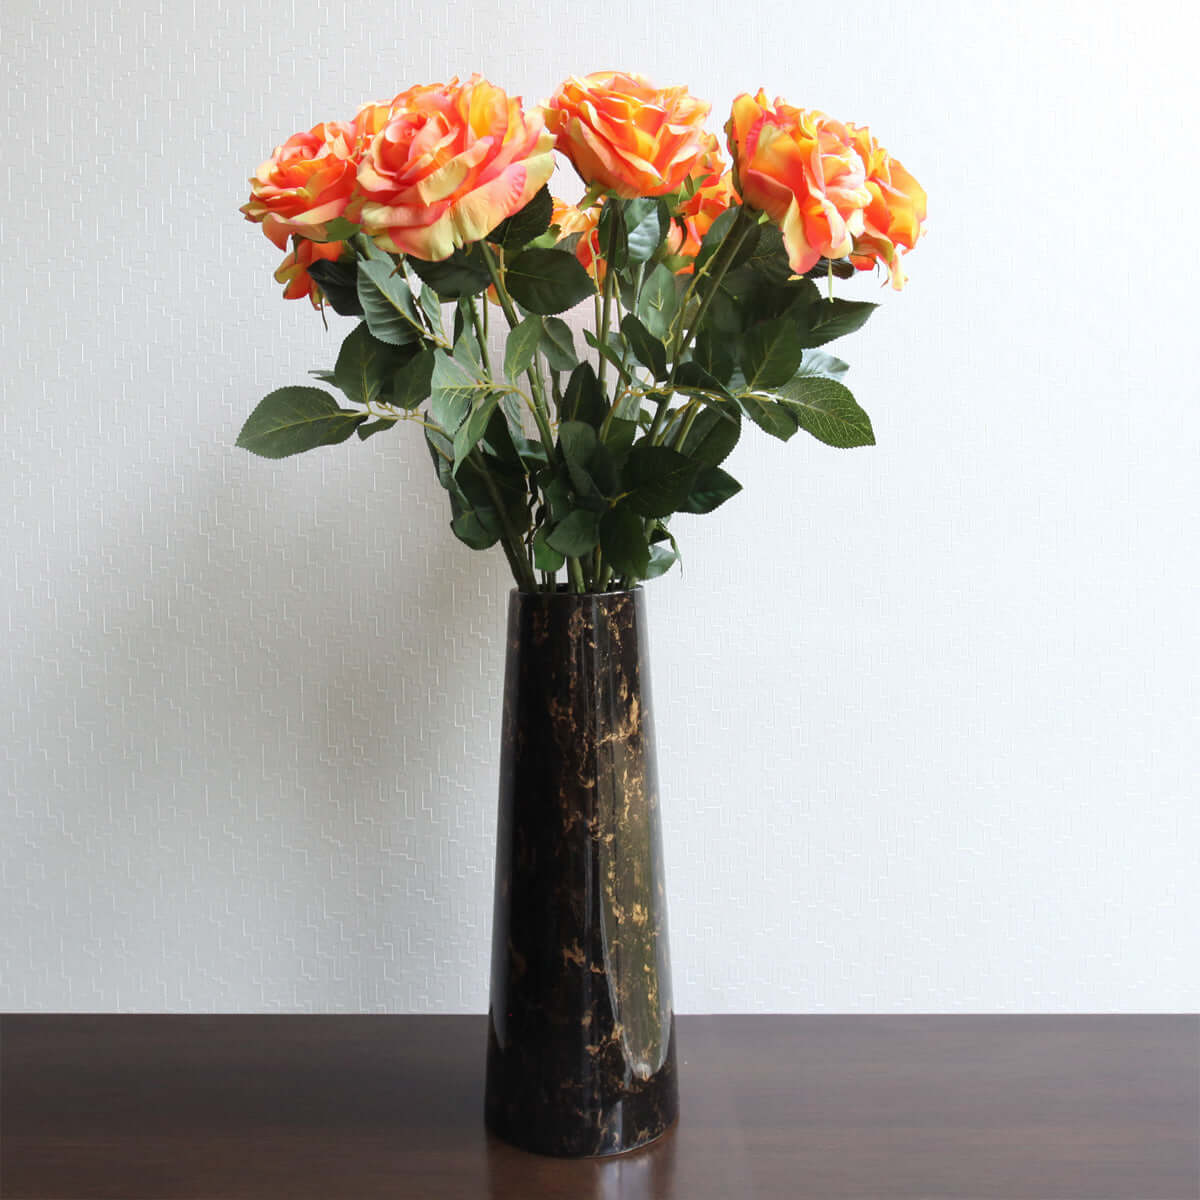 Rose Orange (L) - 85 CM